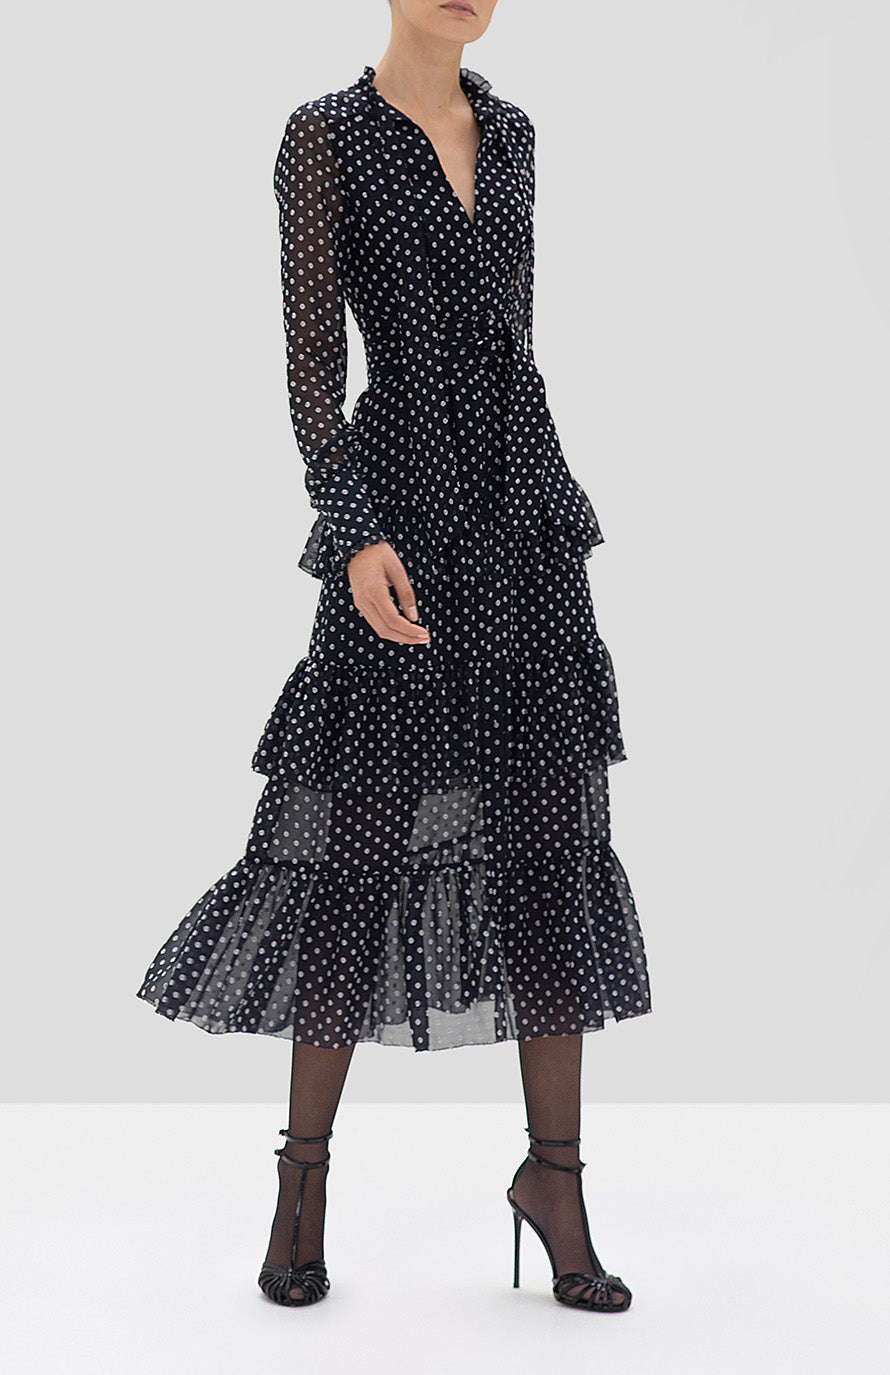 ALEXIS Parissa Dress in Black Embroidered Dot - Rear View